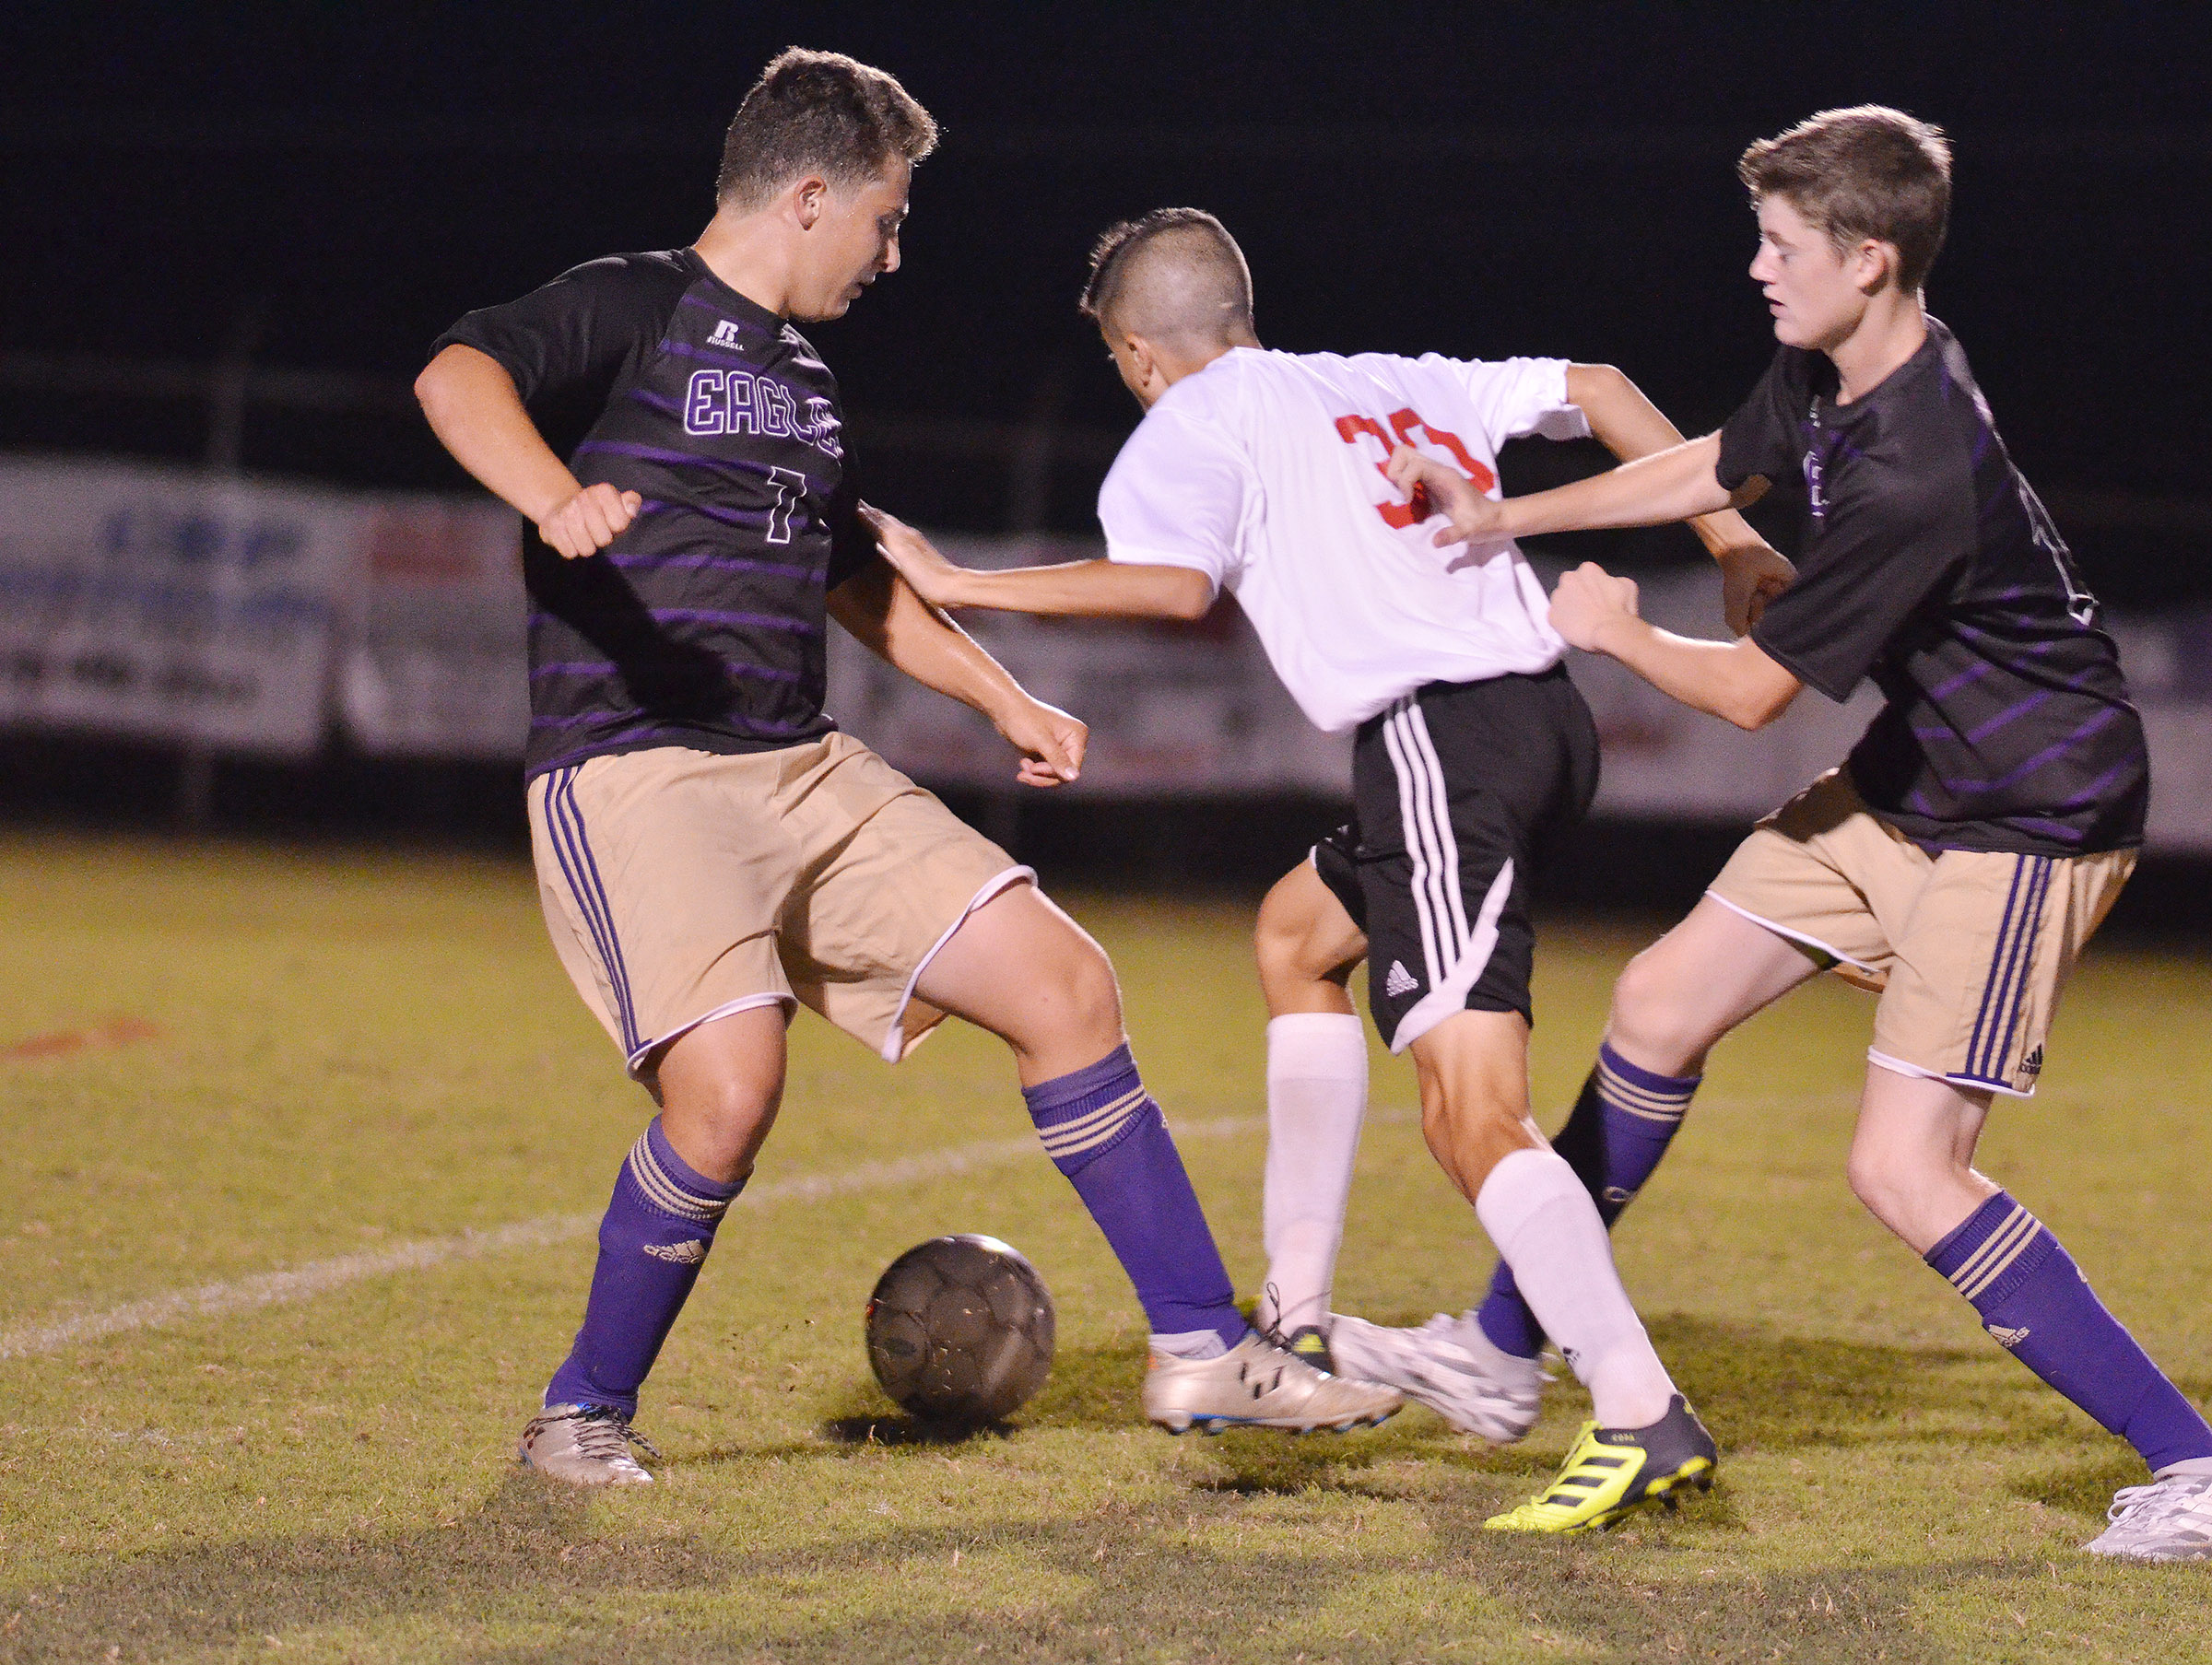 CHS junior Blase Wheatley, at left, and freshman Tristin Faulkner battle for the ball.